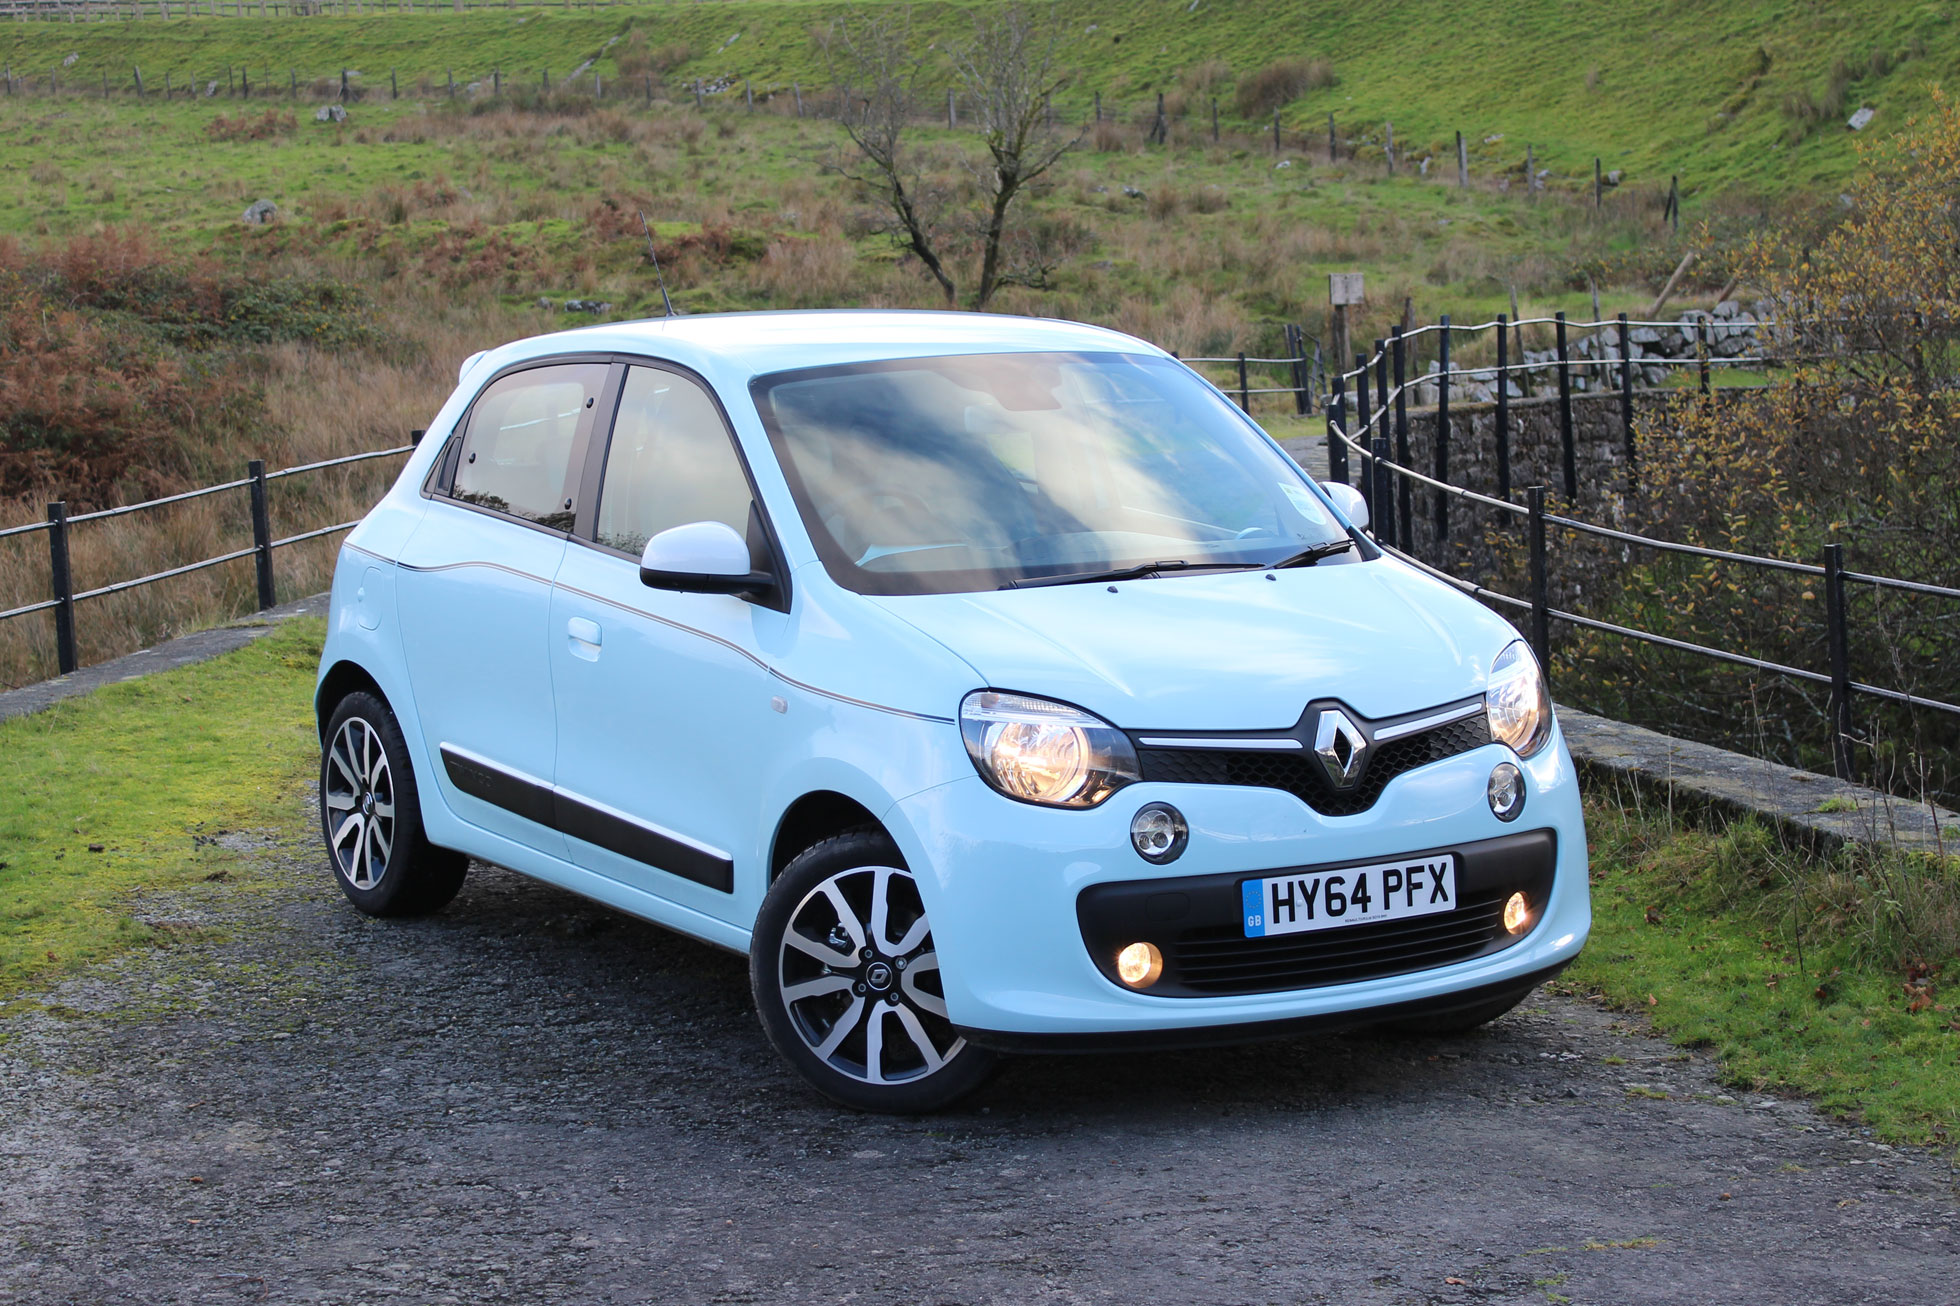 renault twingo 2014 road test review motoring research. Black Bedroom Furniture Sets. Home Design Ideas